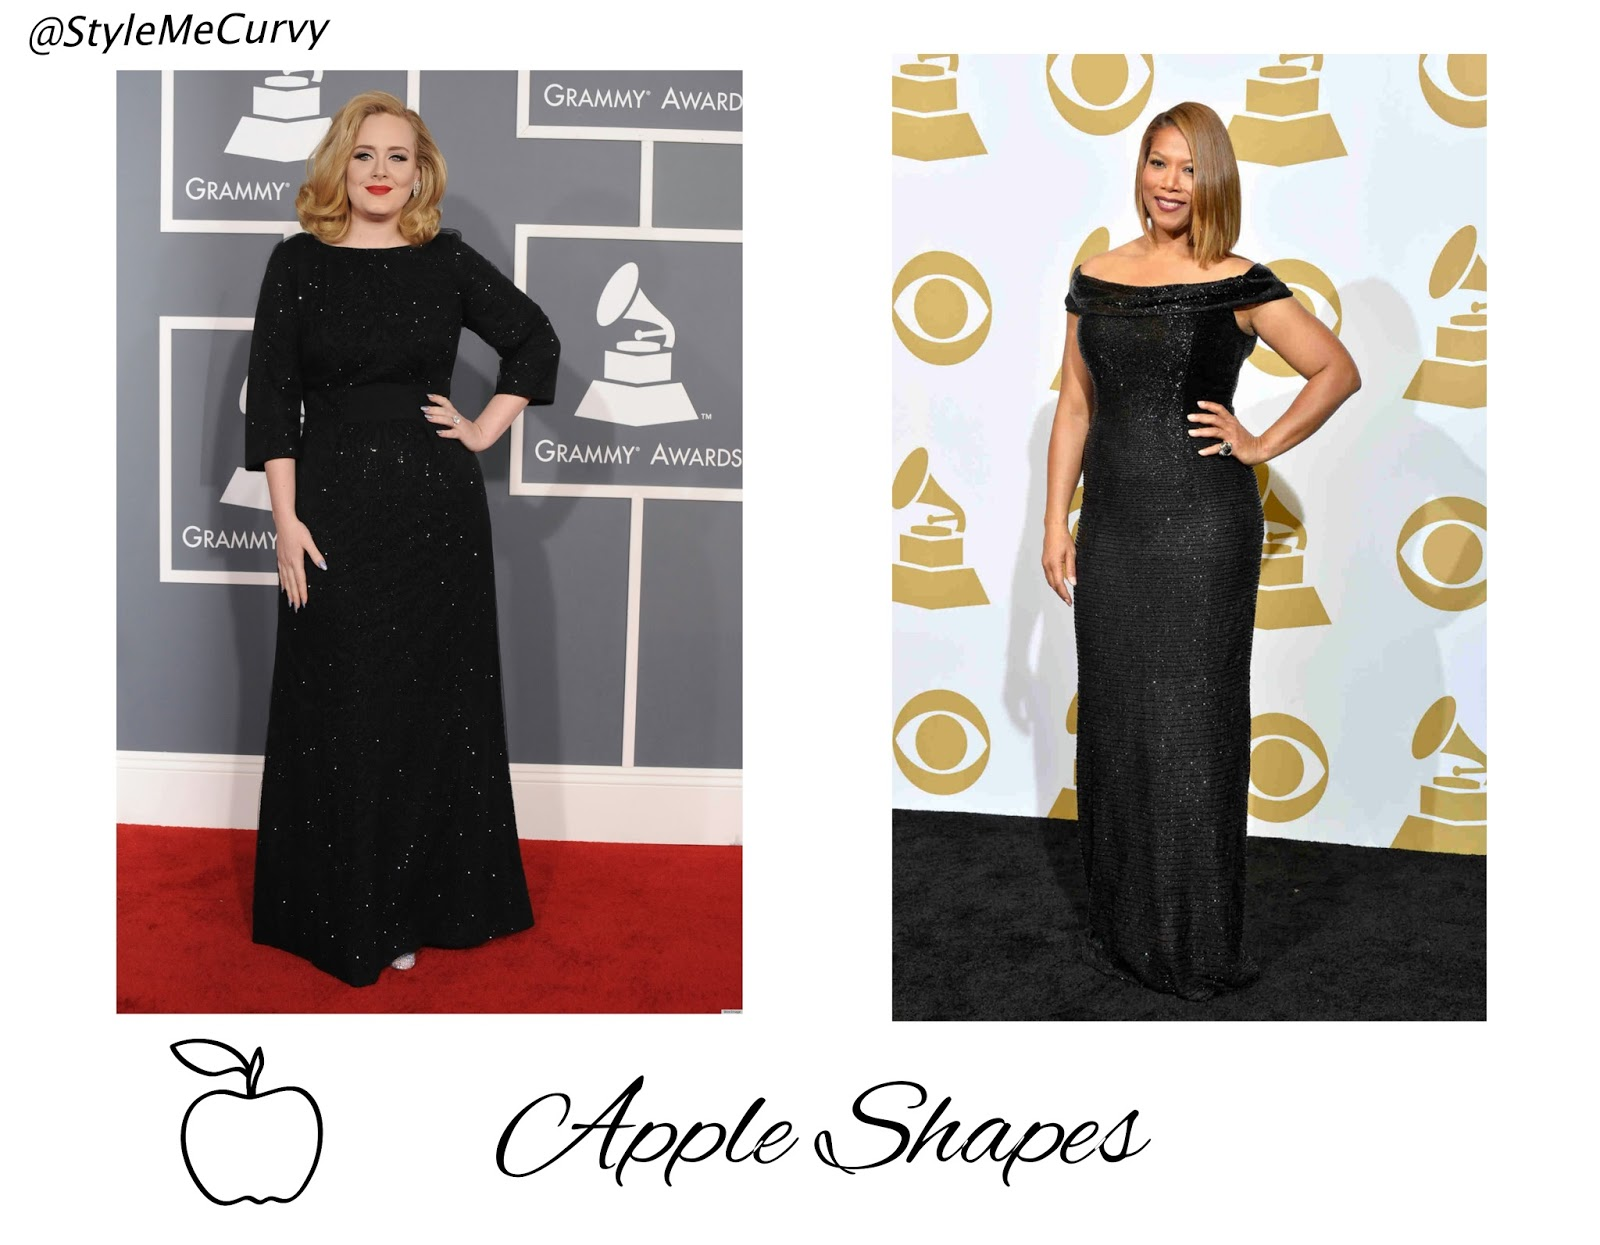 Dresses for apple shaped women - Apple Shape Celebrities Adele Queen Latifah